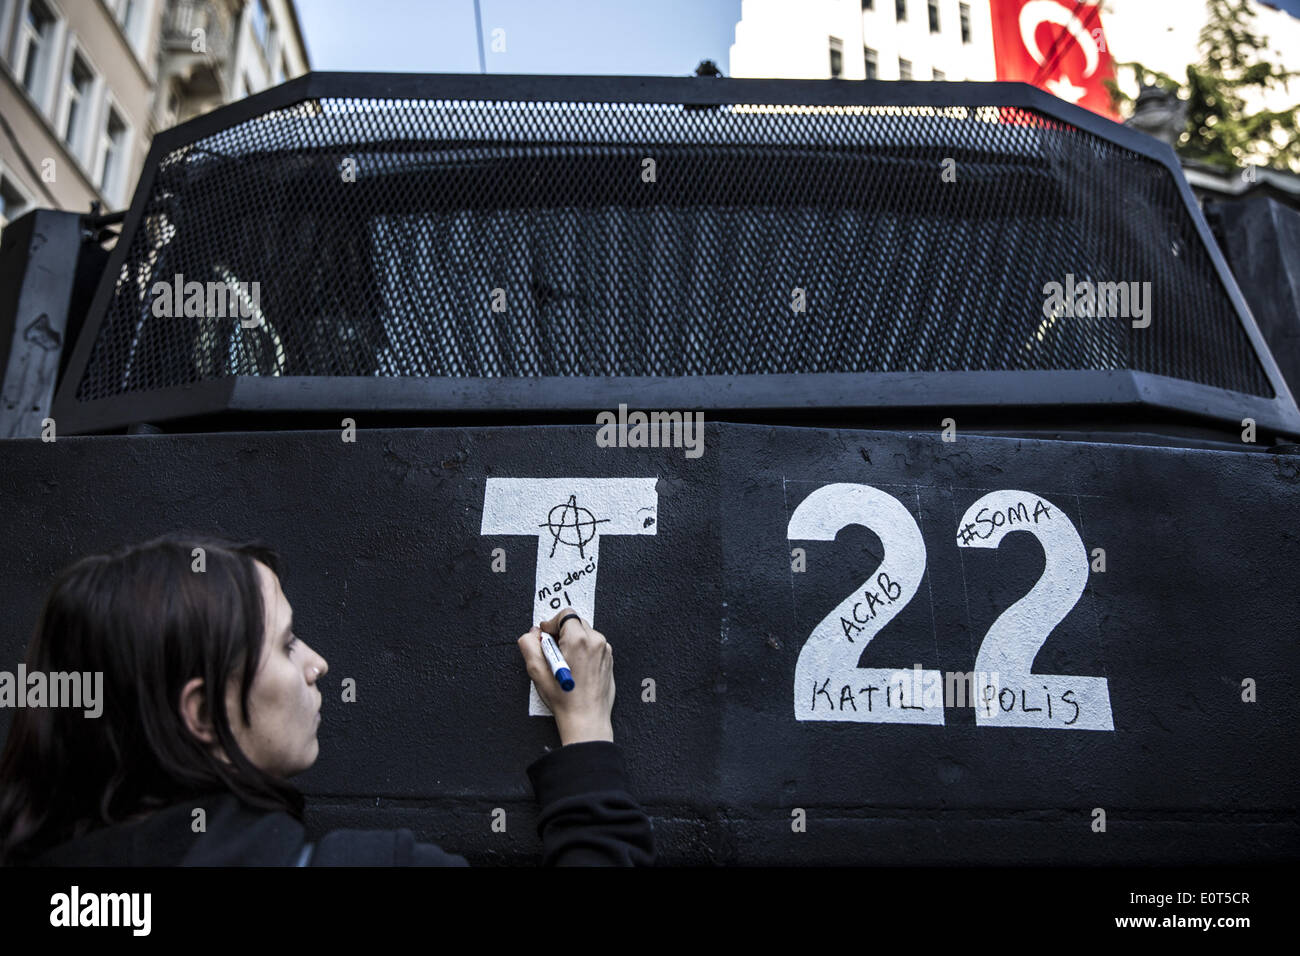 Istanbul, Turkey. 17th May, 2014. A protesters writes on a water canon truck ''Murderer! Be a miner and live with pride'' during a protest in Istanbul on May 17, 2014. Anger has been mounting across the country regarding the government's handling and responsibility in the Soma mine accident, the worst in Turkey's history, which killed at least 300 miners. PHOTO BY JODI HILTON/NURPHOTO © Jodi Hilton/NurPhoto/ZUMAPRESS.com/Alamy Live News - Stock Image